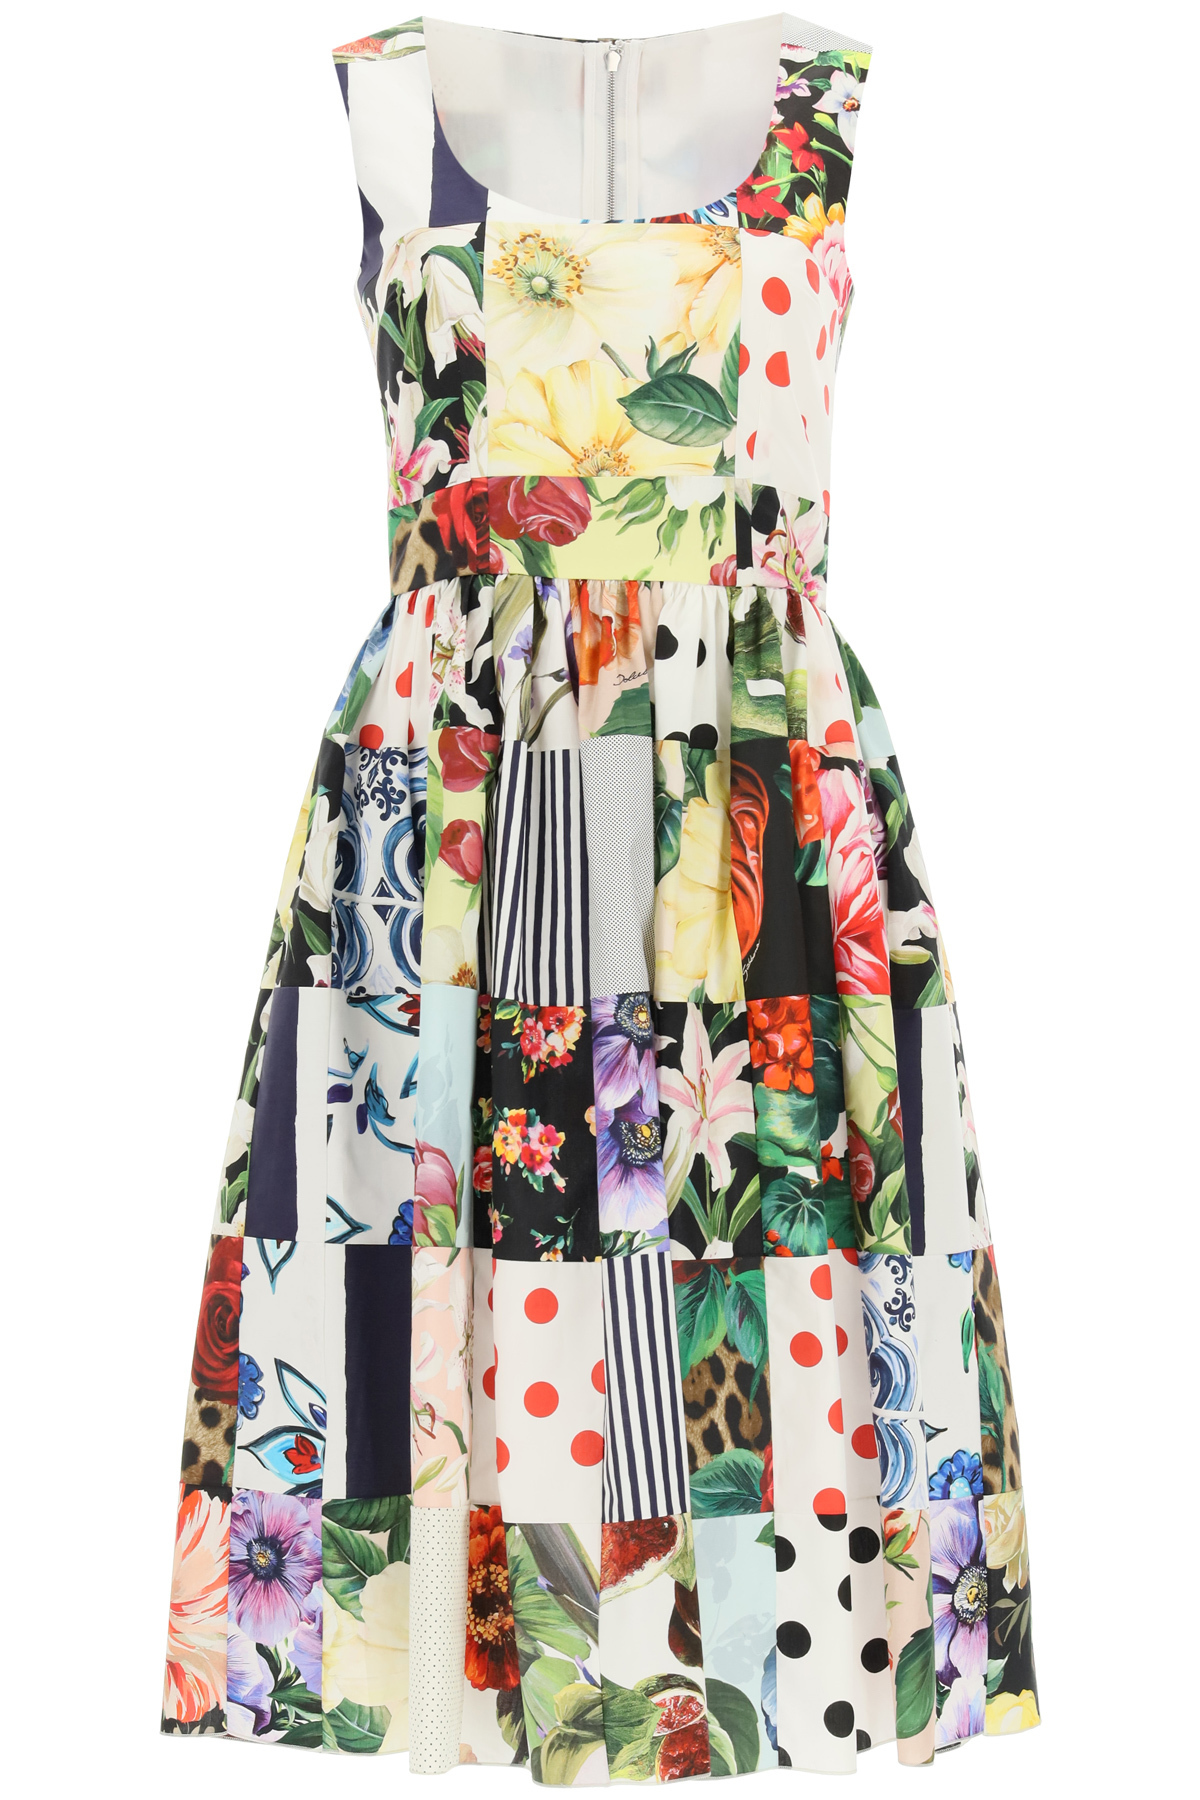 DOLCE & GABBANA PATCHWORK MIDI DRESS IN POPLIN 42 Red, White, Yellow Cotton